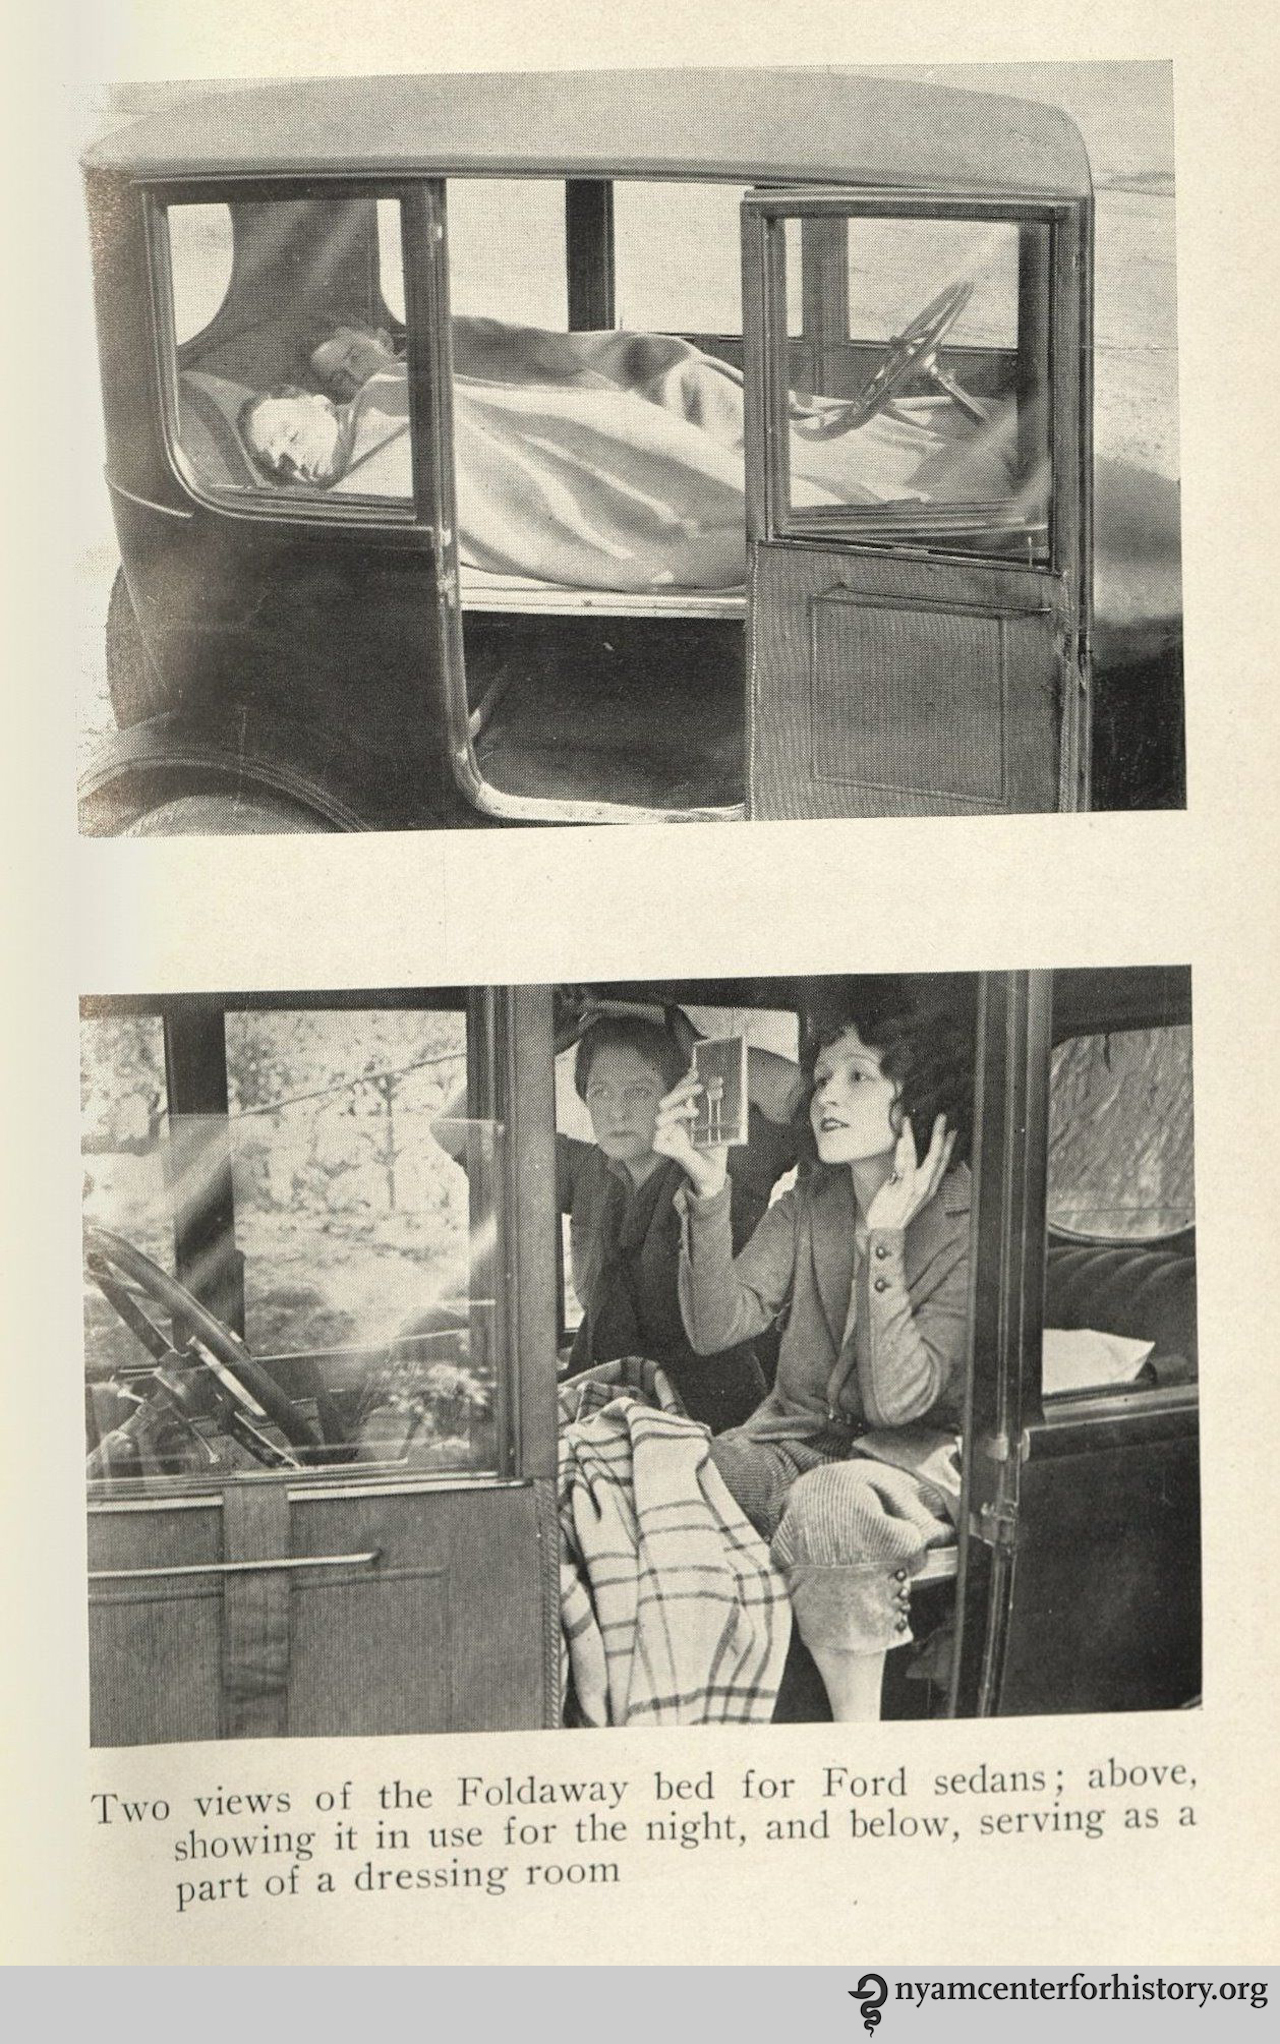 'Motor Camping' by J. C. Long and J. D. Long (1923)